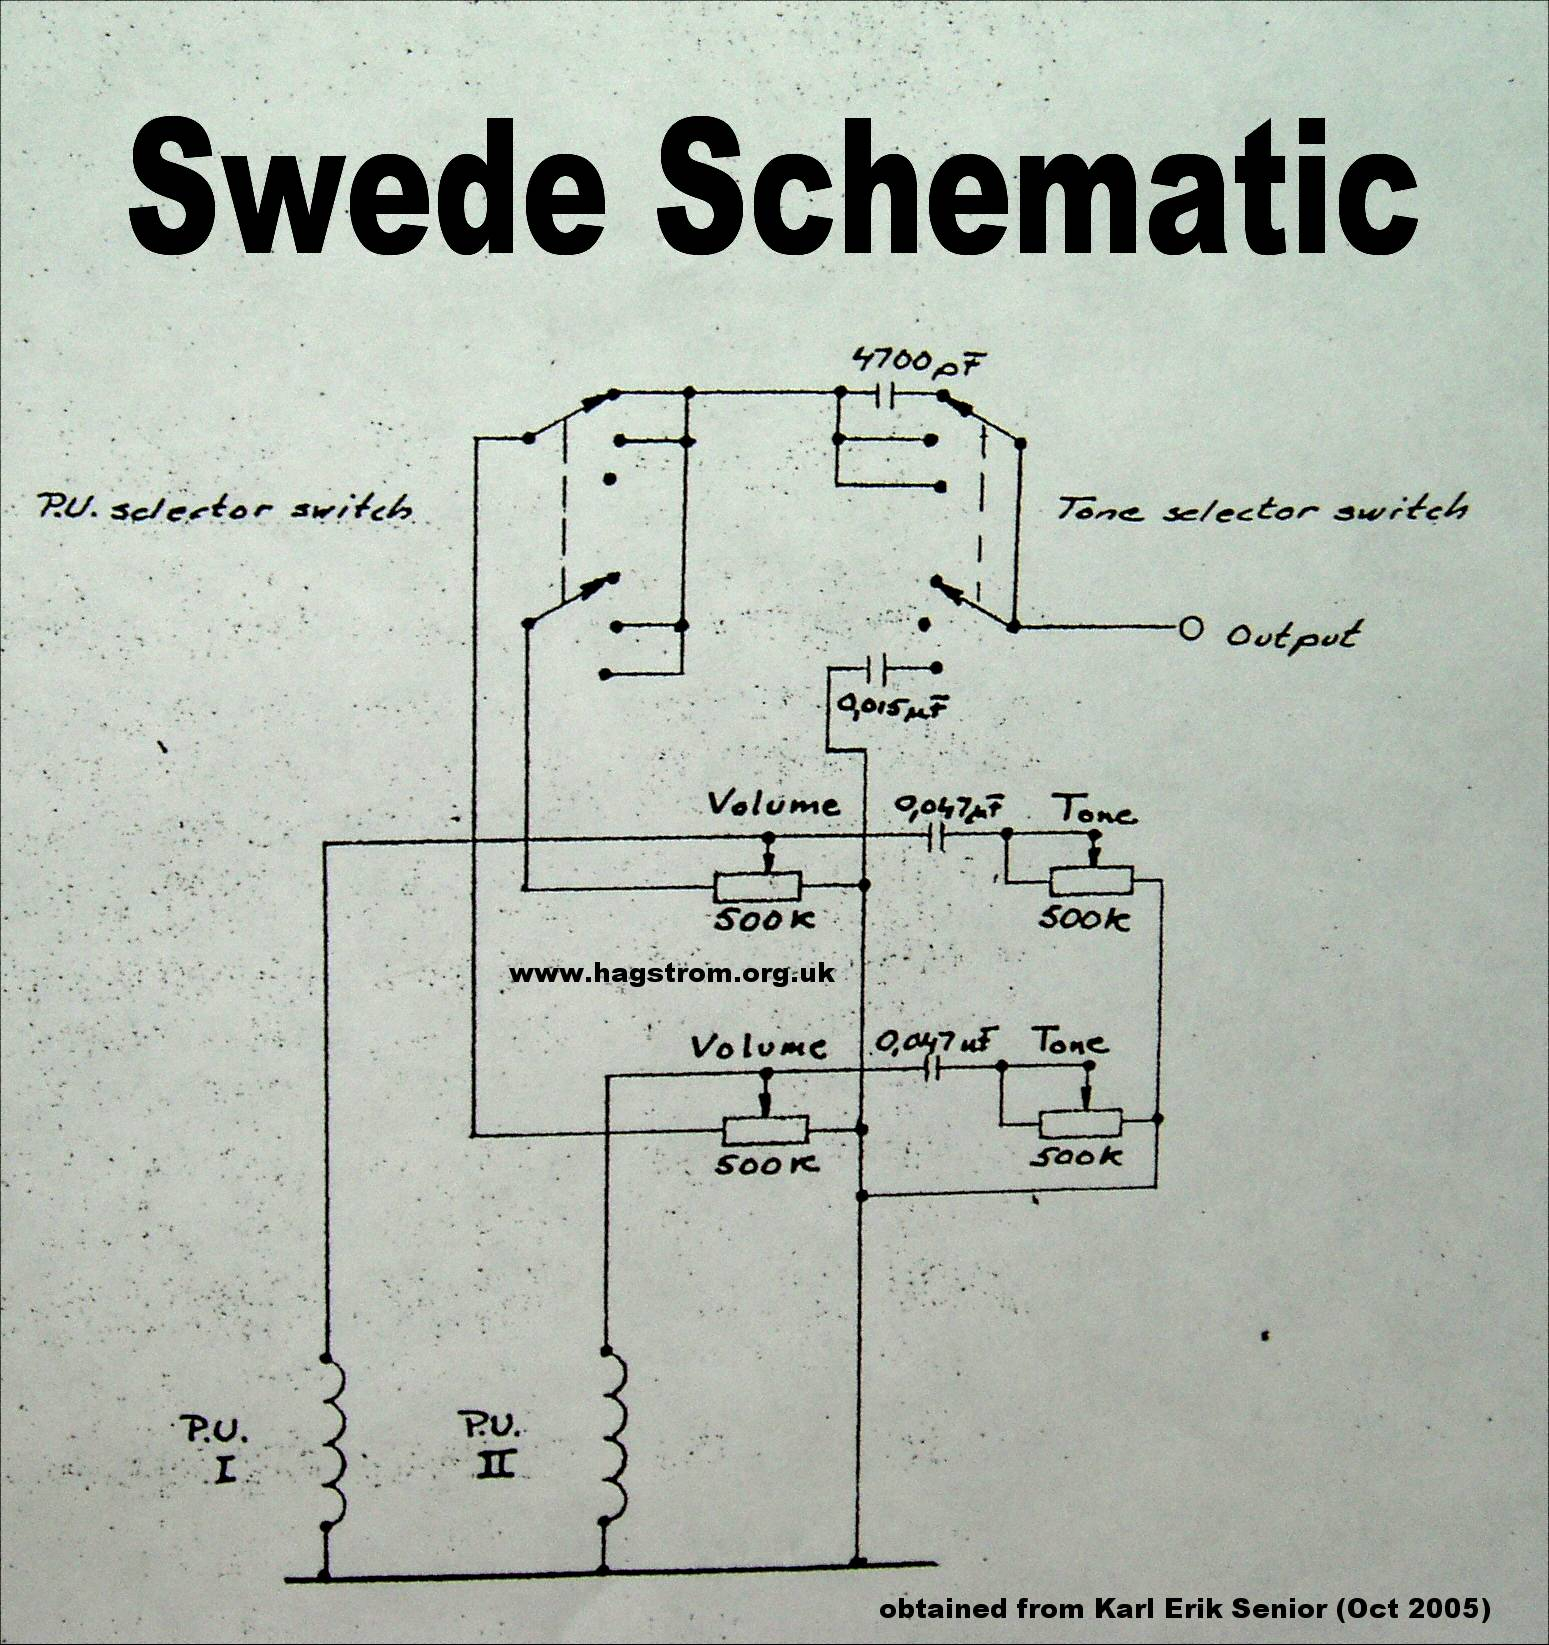 Swede2 hagstrom swede wiring diagram fender precision bass wiring diagram hagstrom swede wiring diagram at soozxer.org